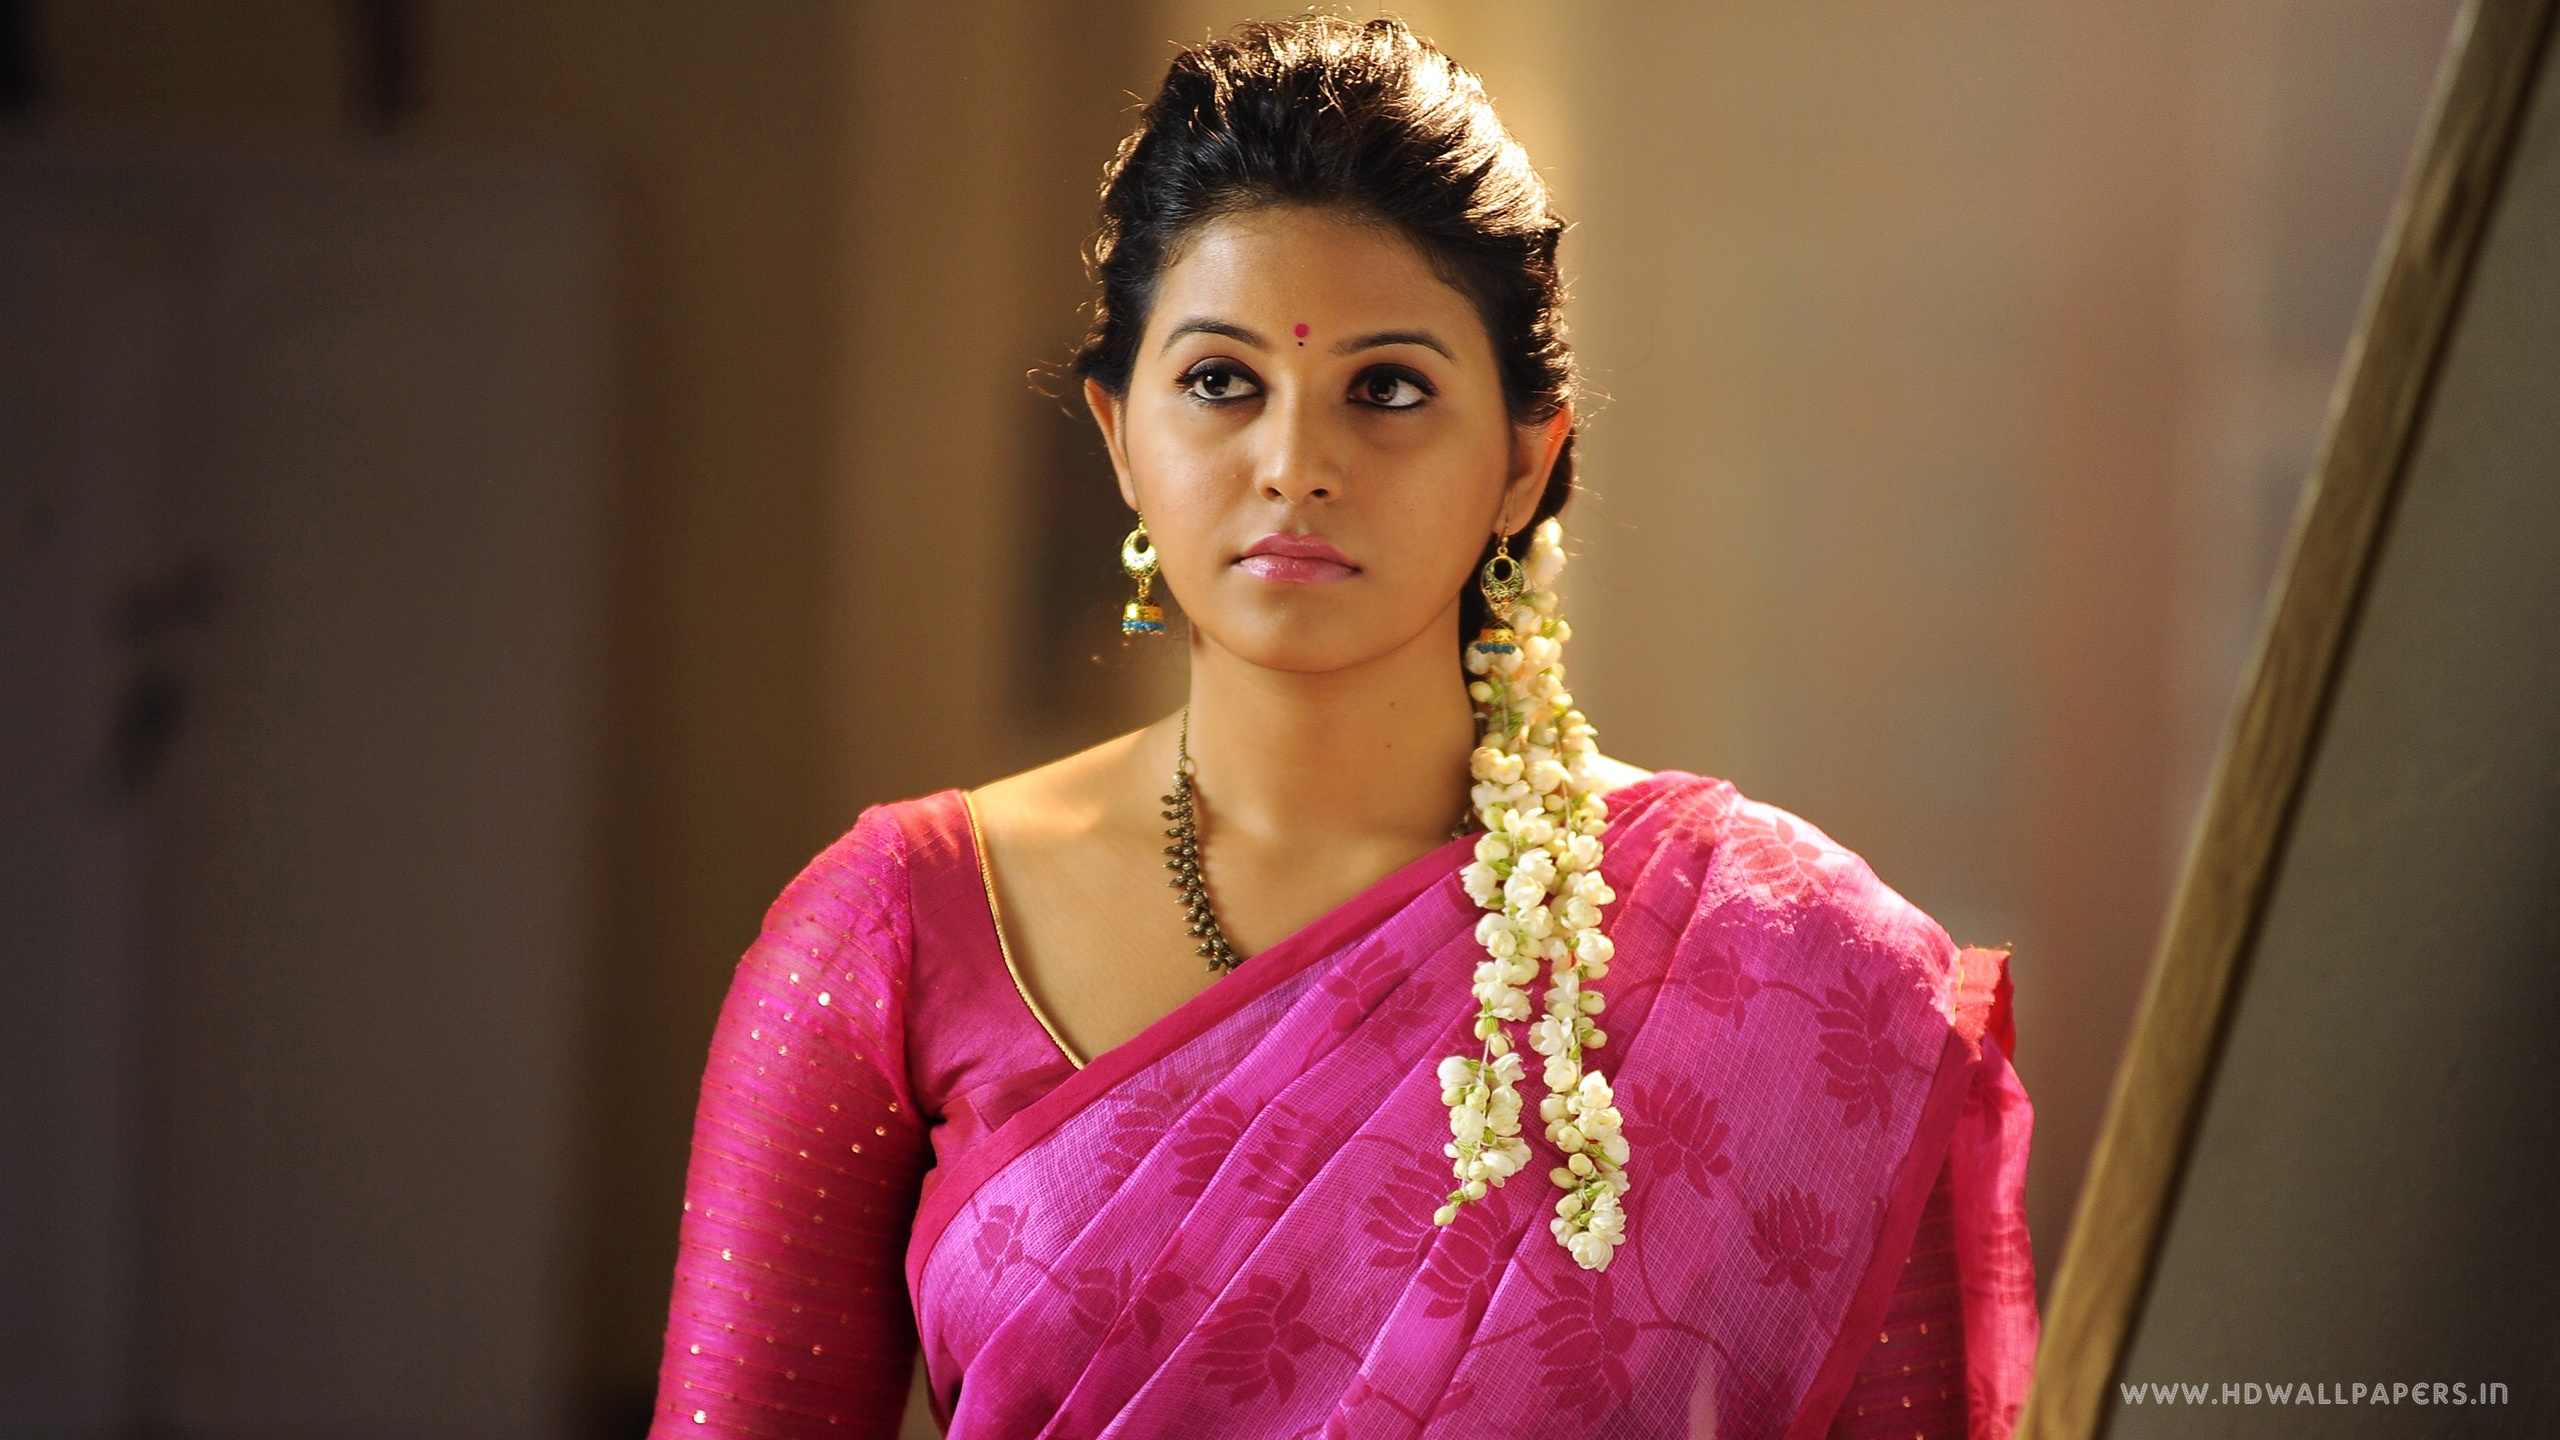 Tamil Actress Anjali Wallpapers In Jpg Format For Free Download